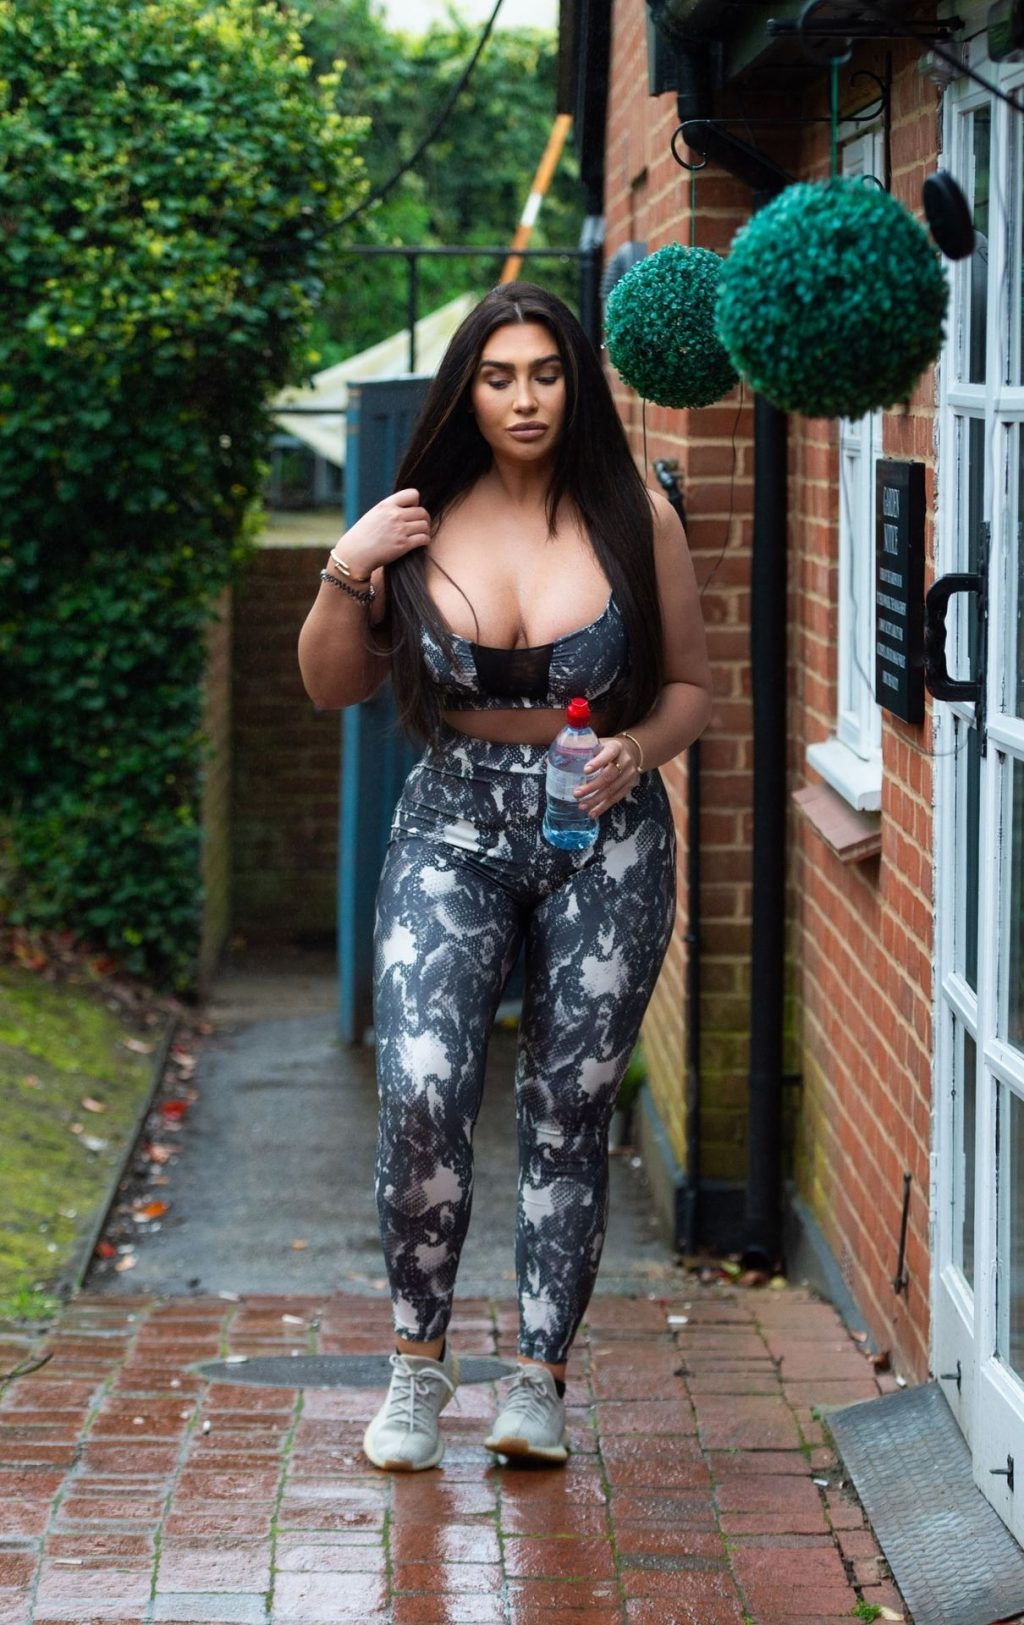 Lauren Goodger is Seen Leaving Her House to Head Out for an Exercise Session (22 Photos)